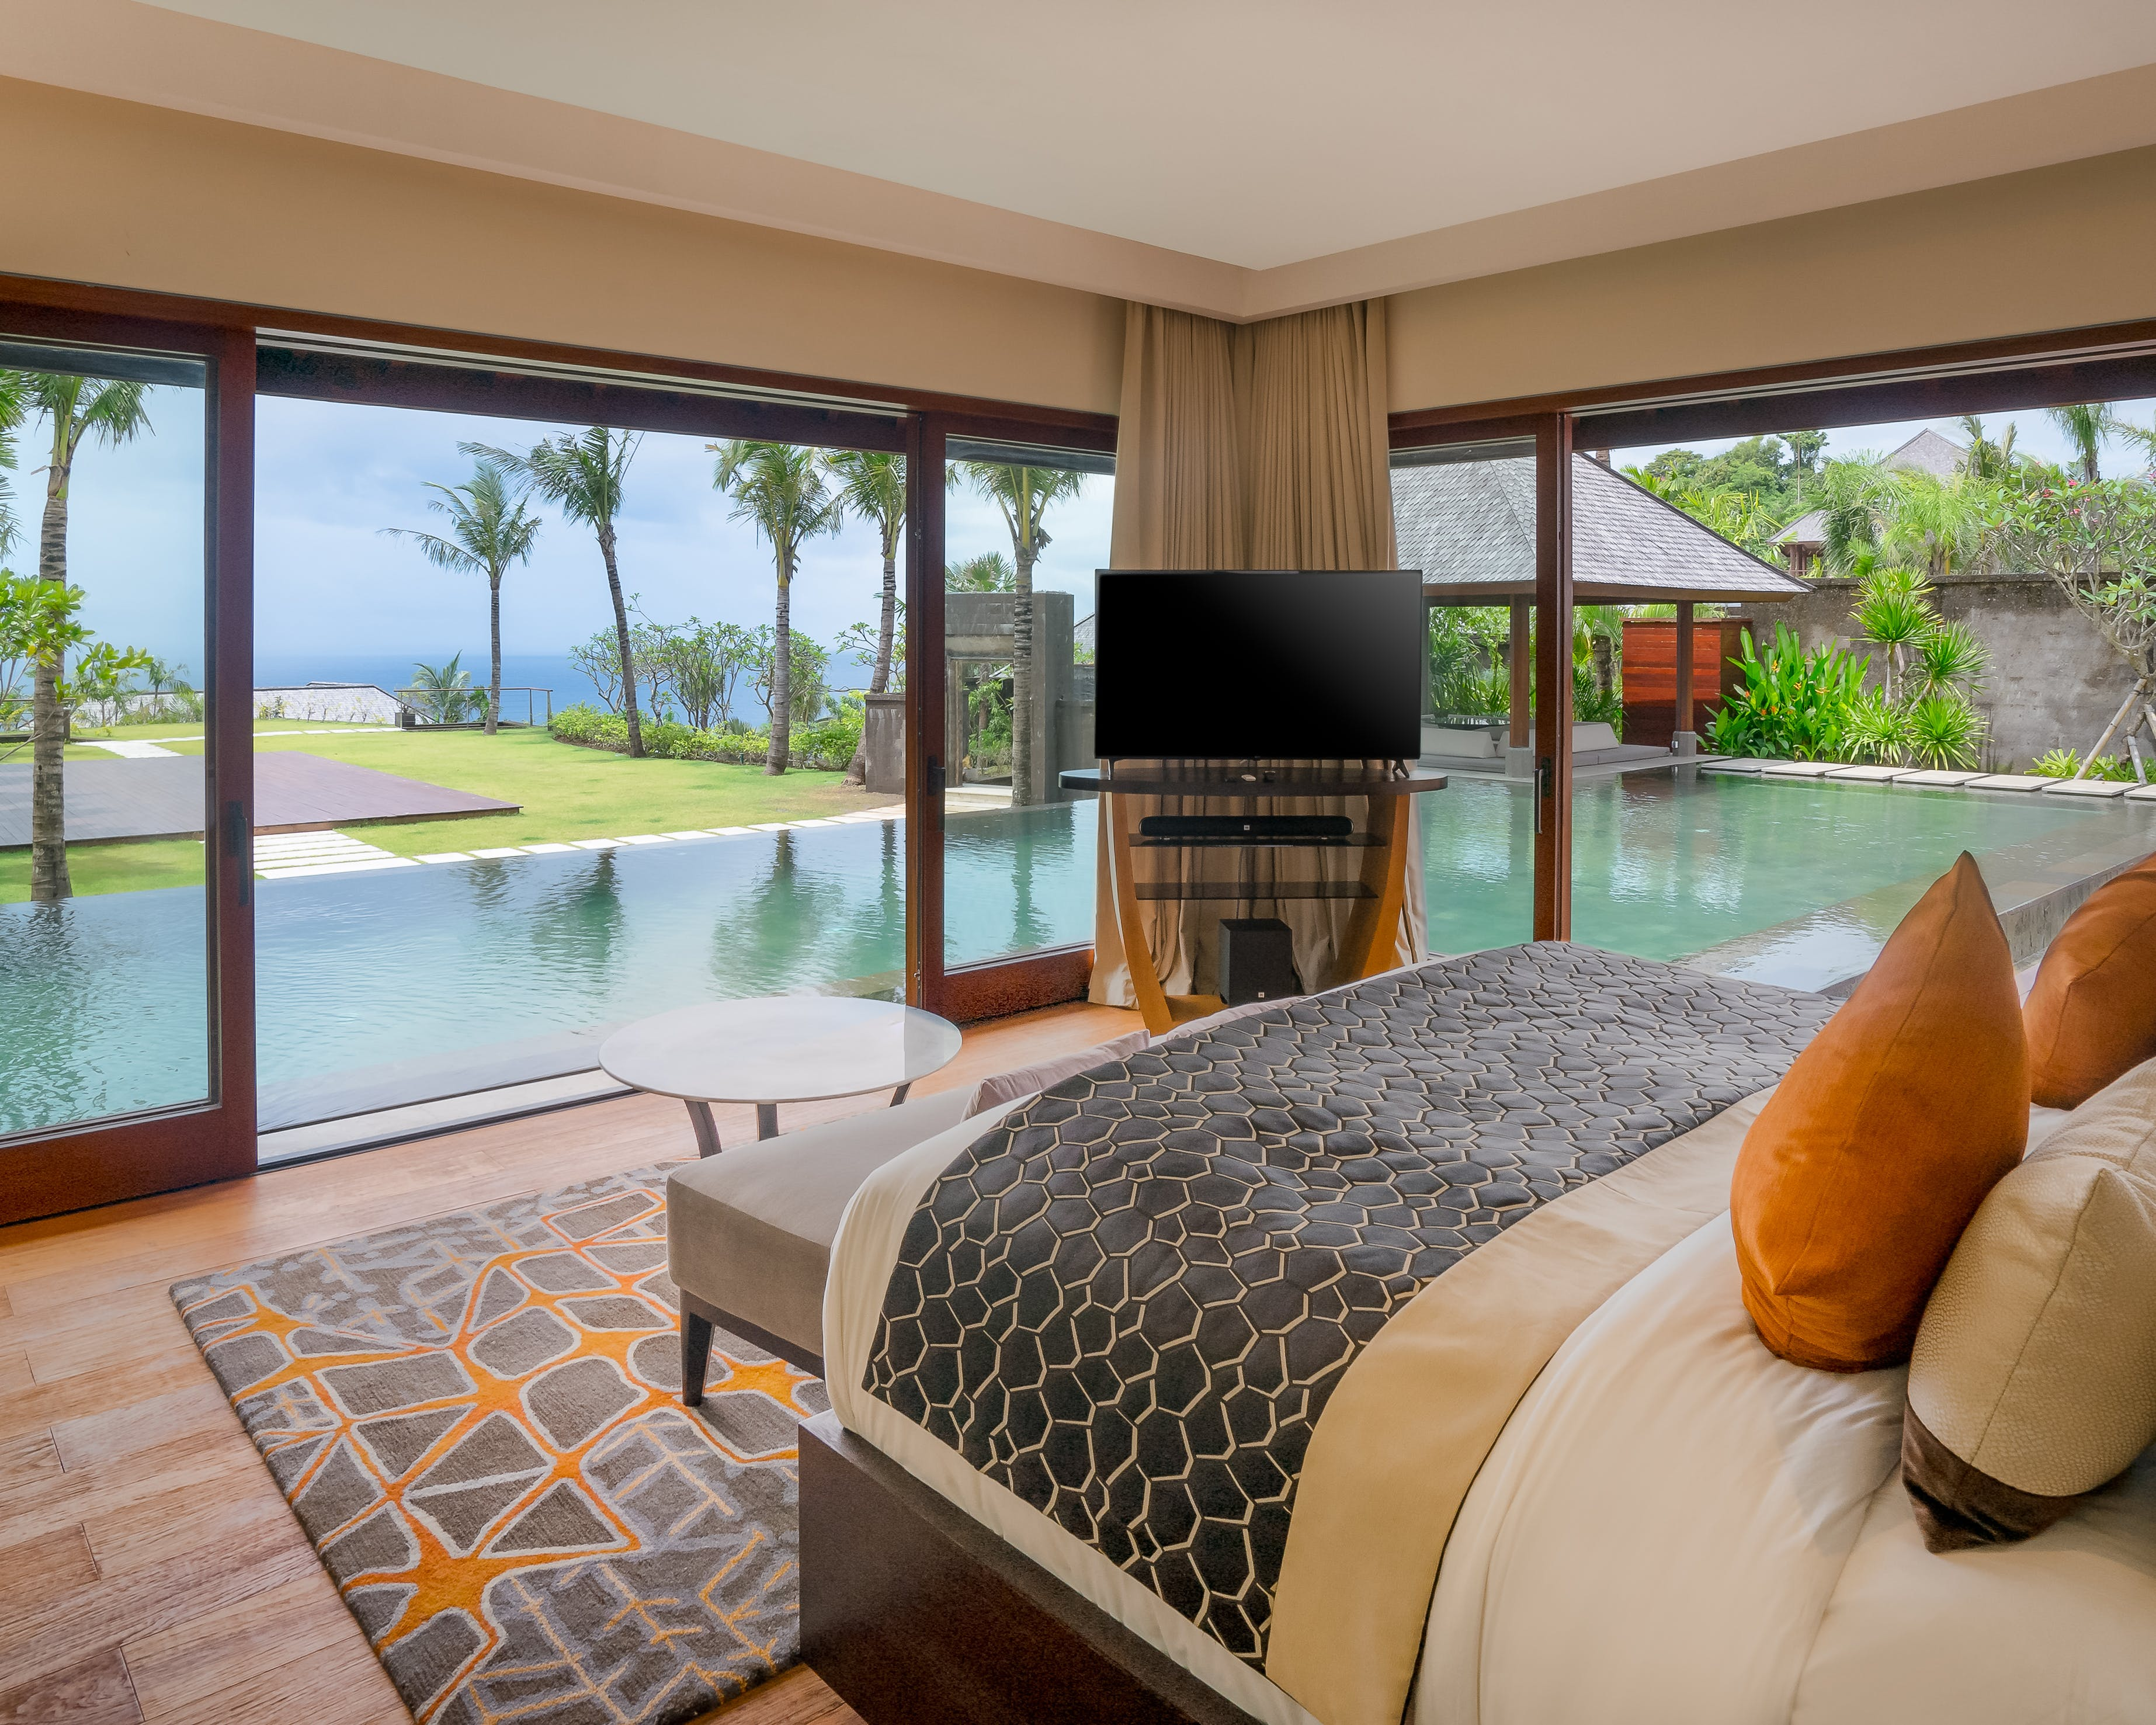 The Breeze Villa - The edge Luxury Villa Resort, Pecatu, Uluwatu, Bali Indonesia